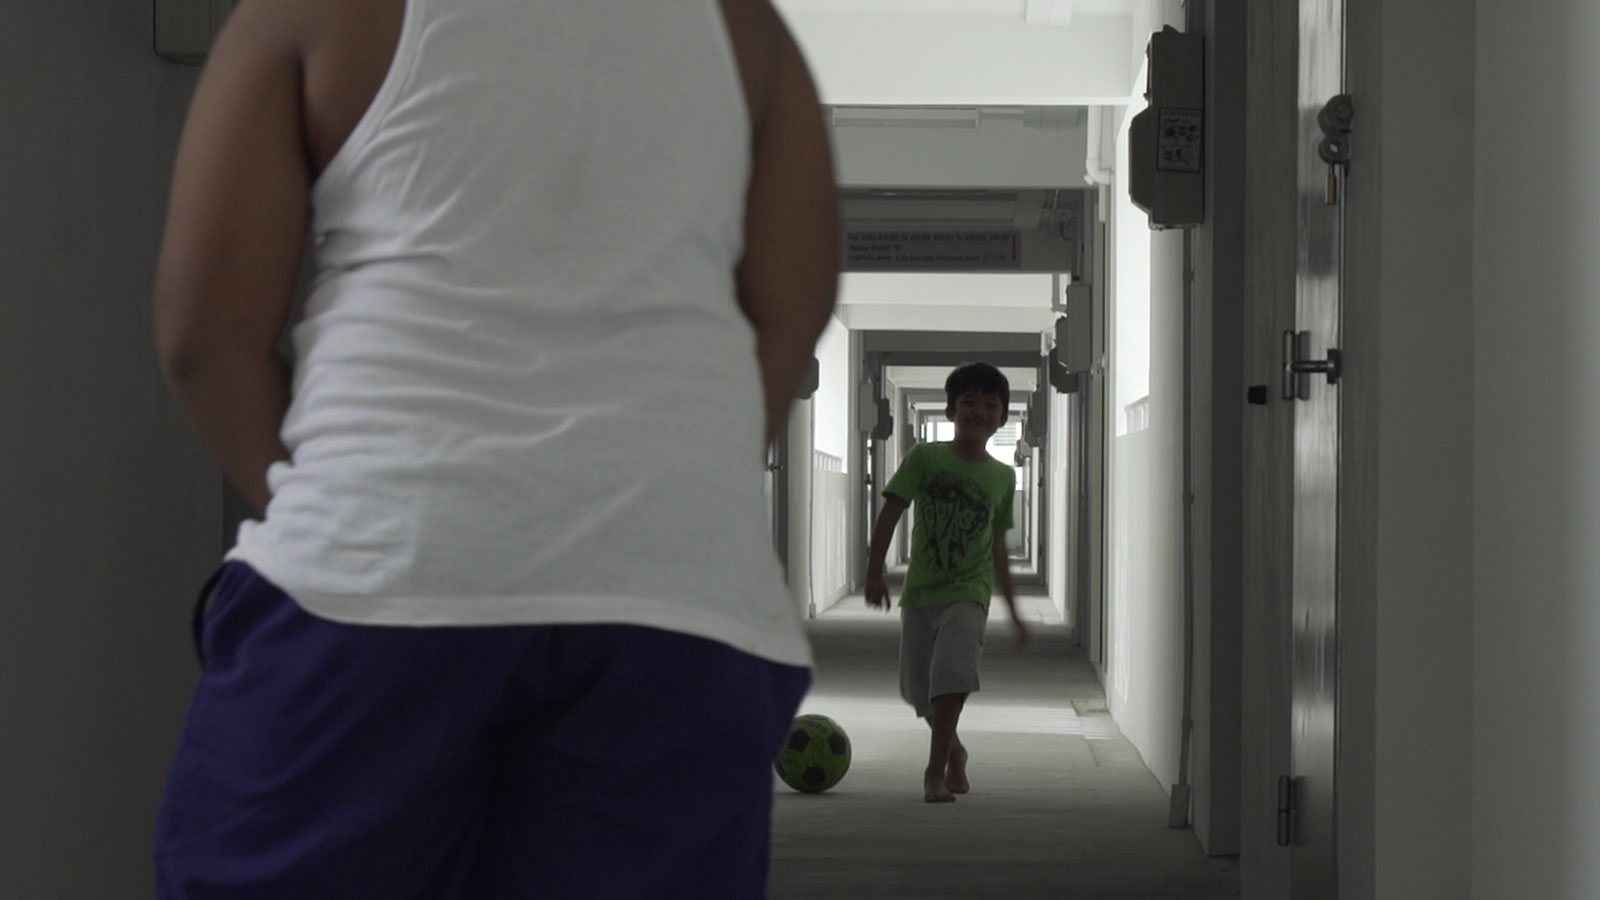 Fizah's children playing football in the corridor